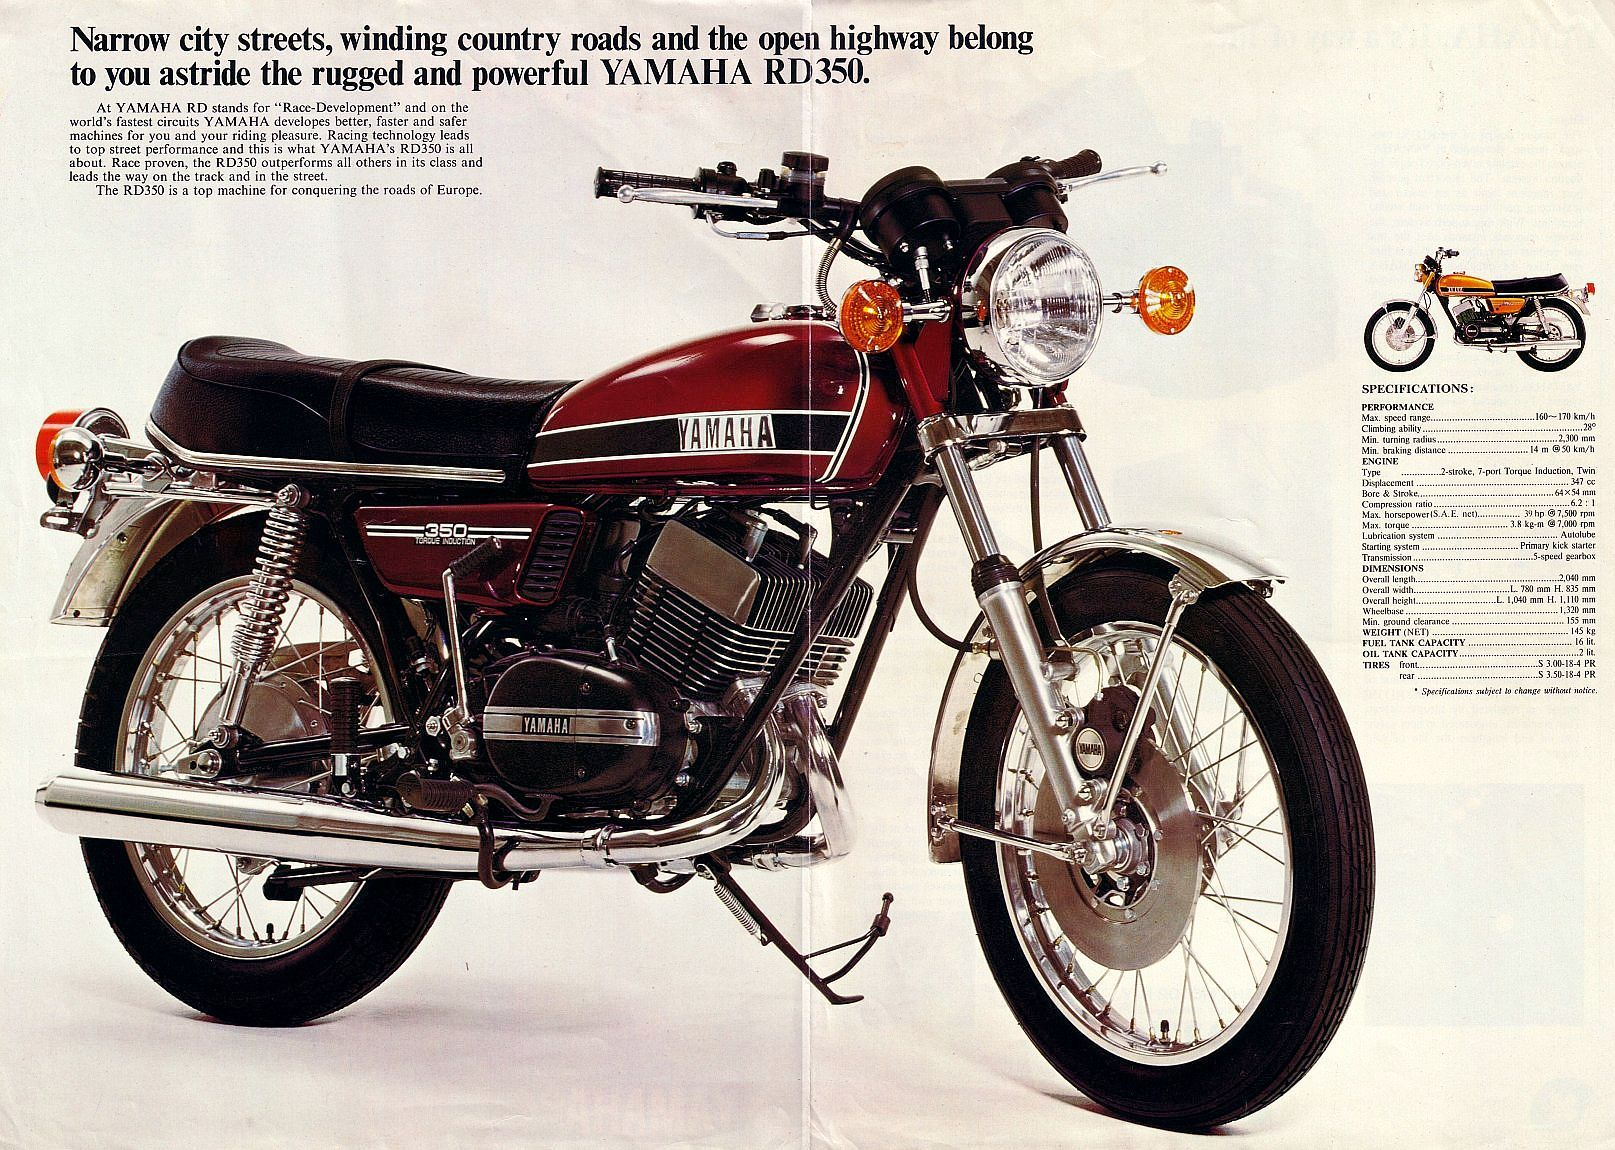 Yamaha Rd350a Medium Brochure Centre Jpg 1 615 1 150 Pixels With